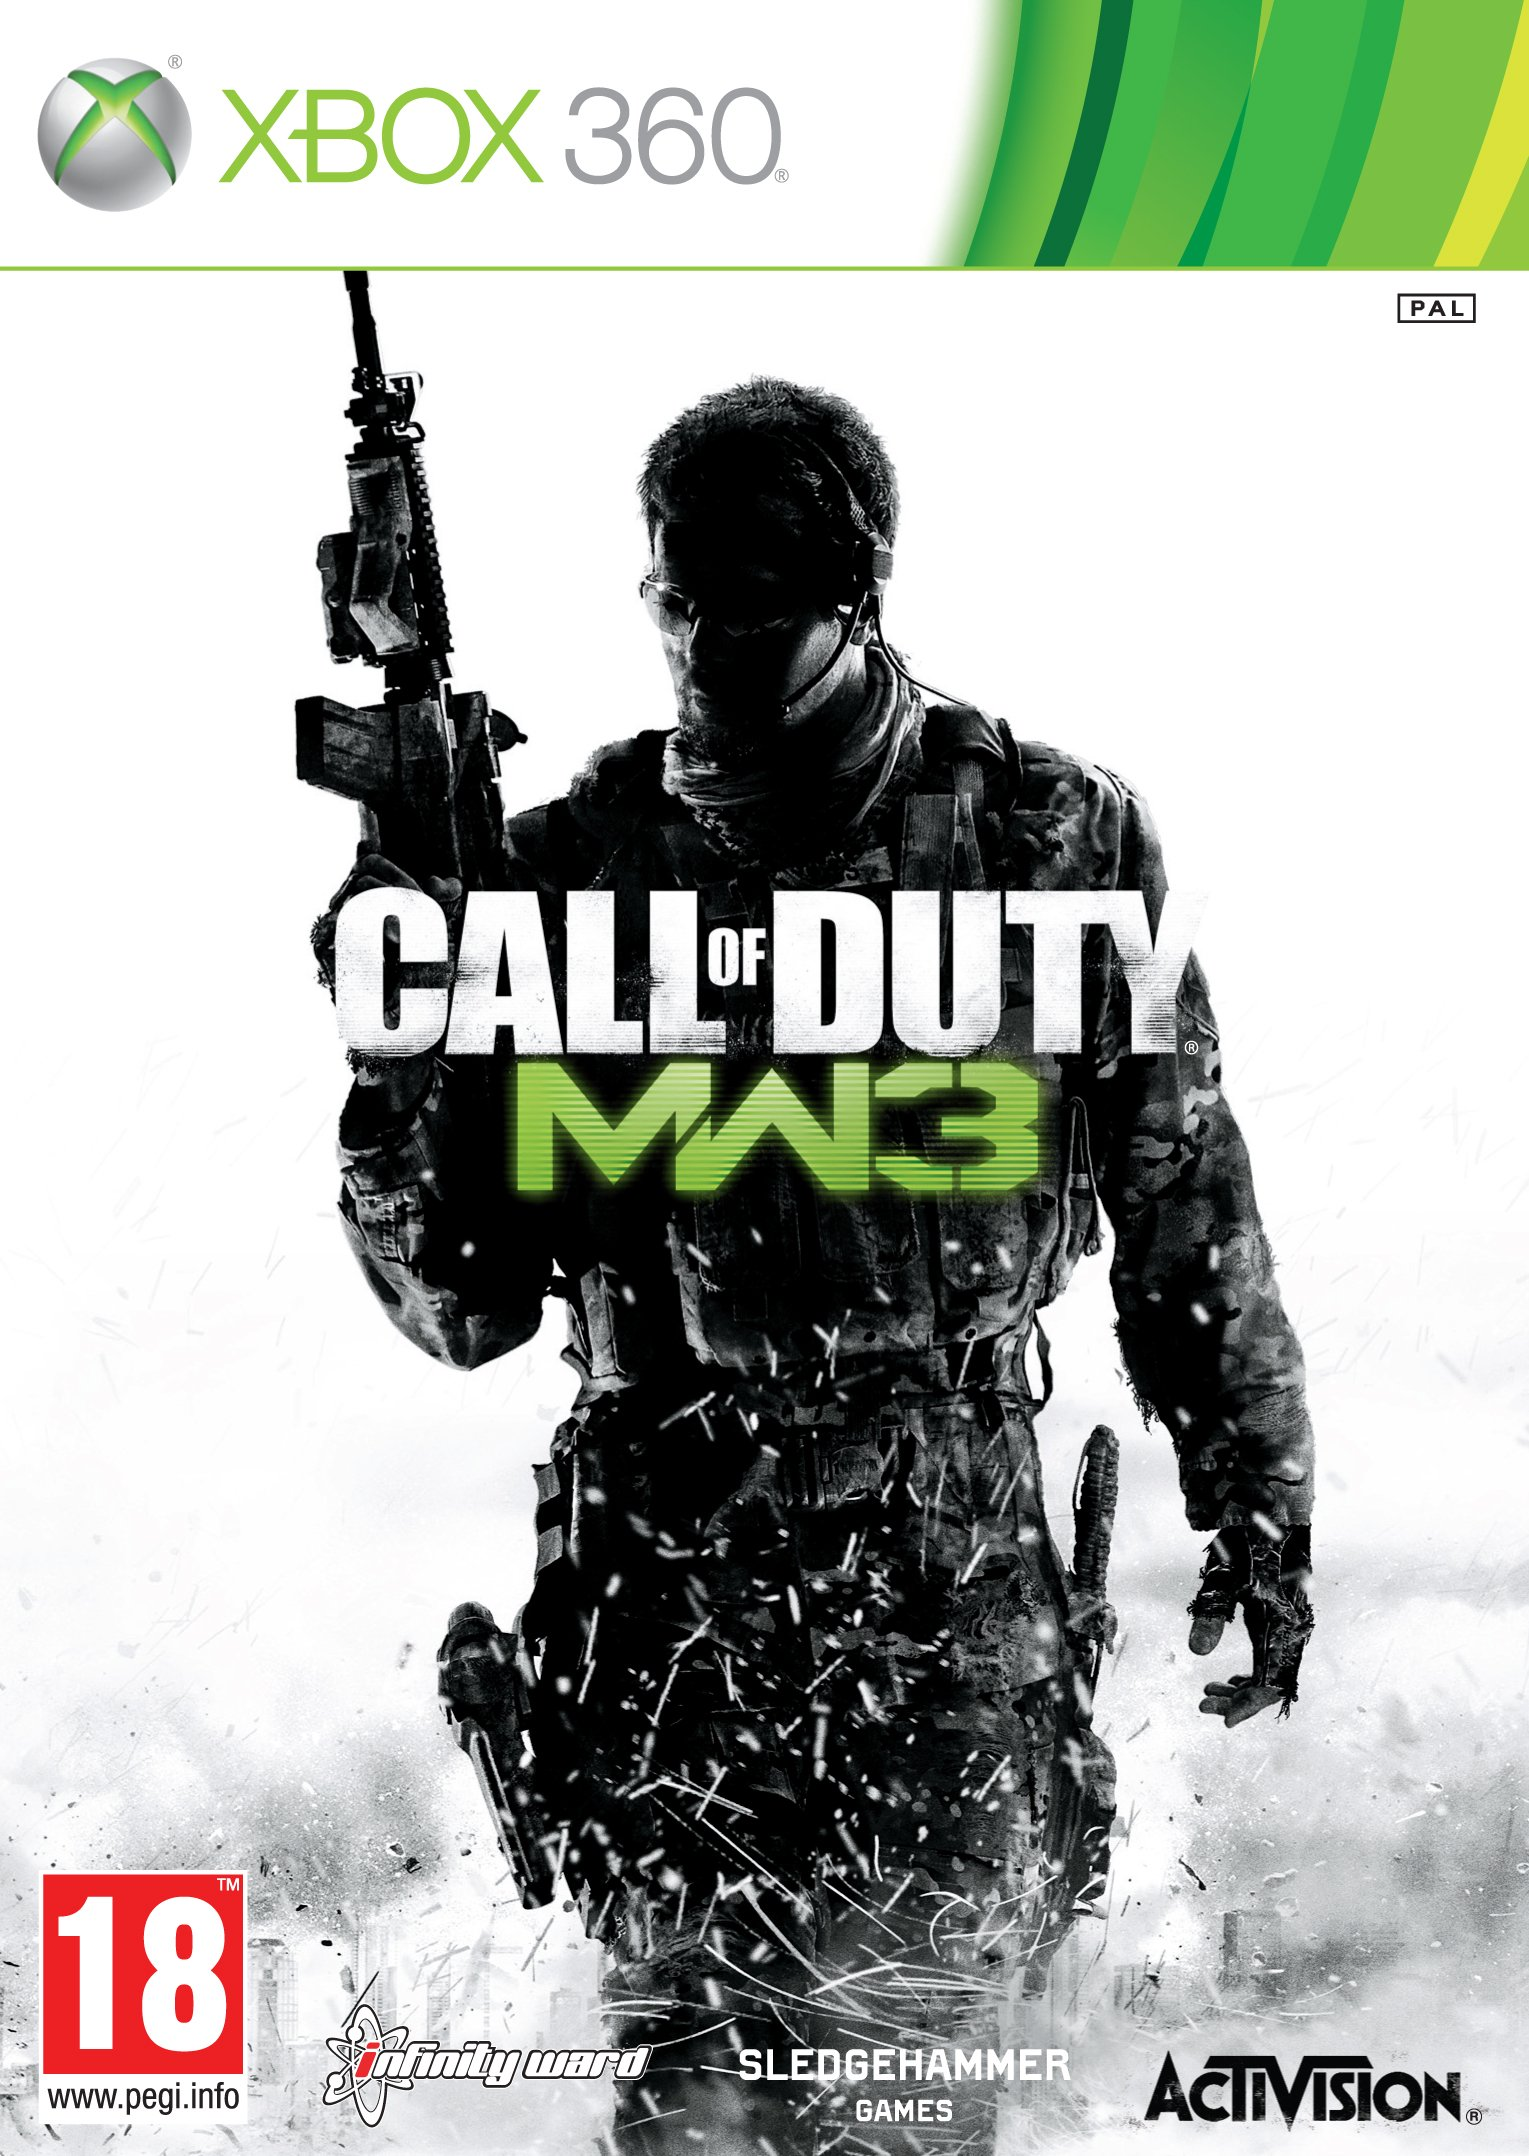 Call of Duty Modern Warfare 3 (Xbox 360) product image